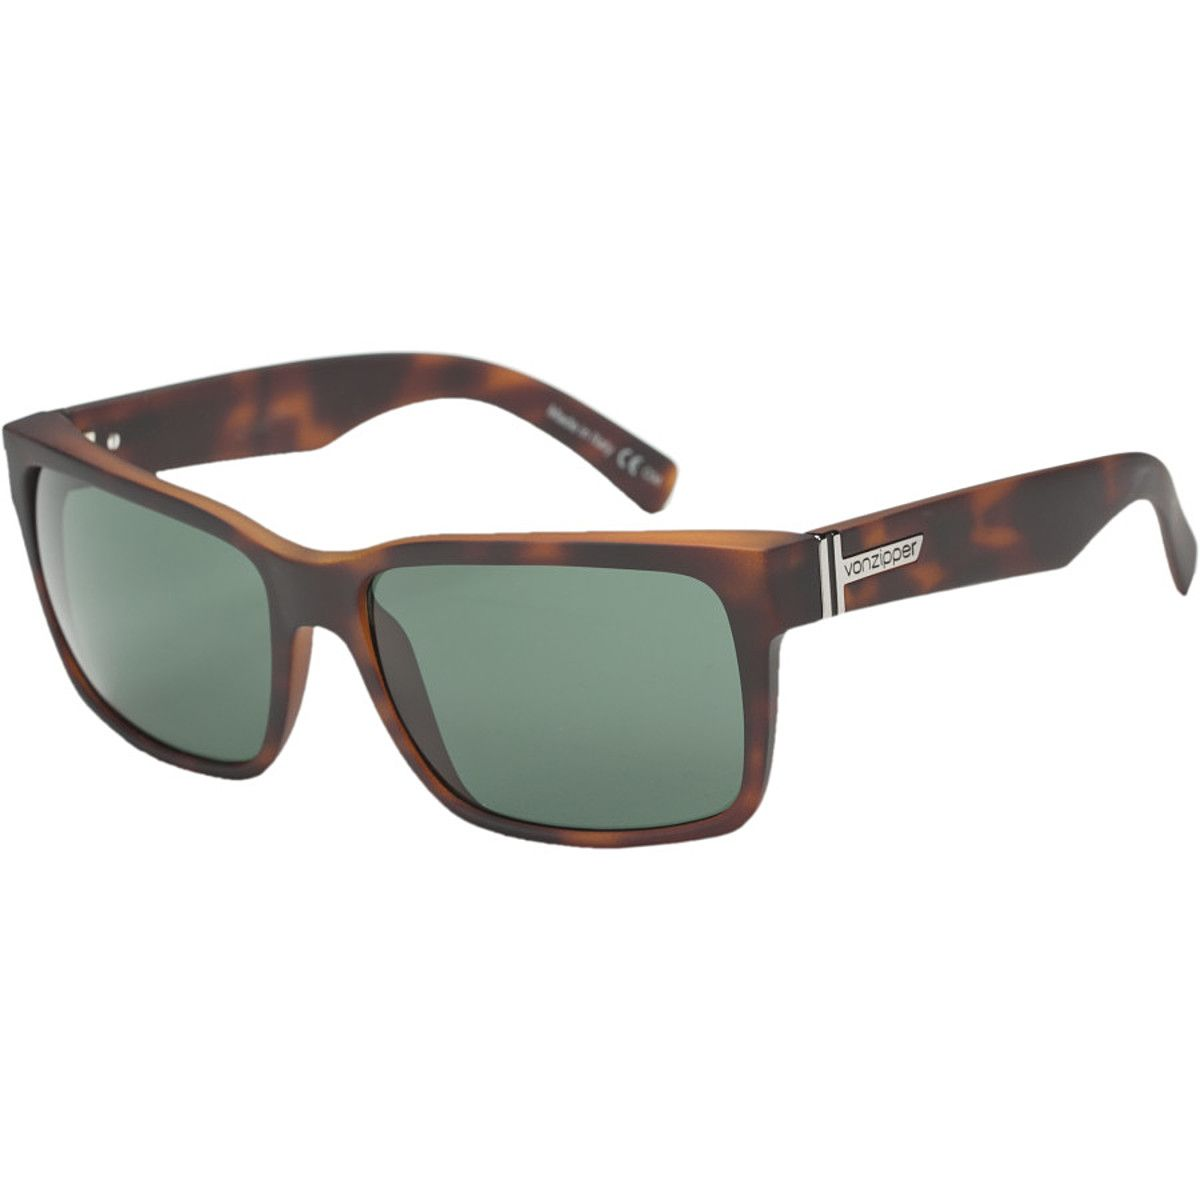 884553abc7 VonZipper Elmore Sunglasses Tort Satin Vintage Grey One Size ...